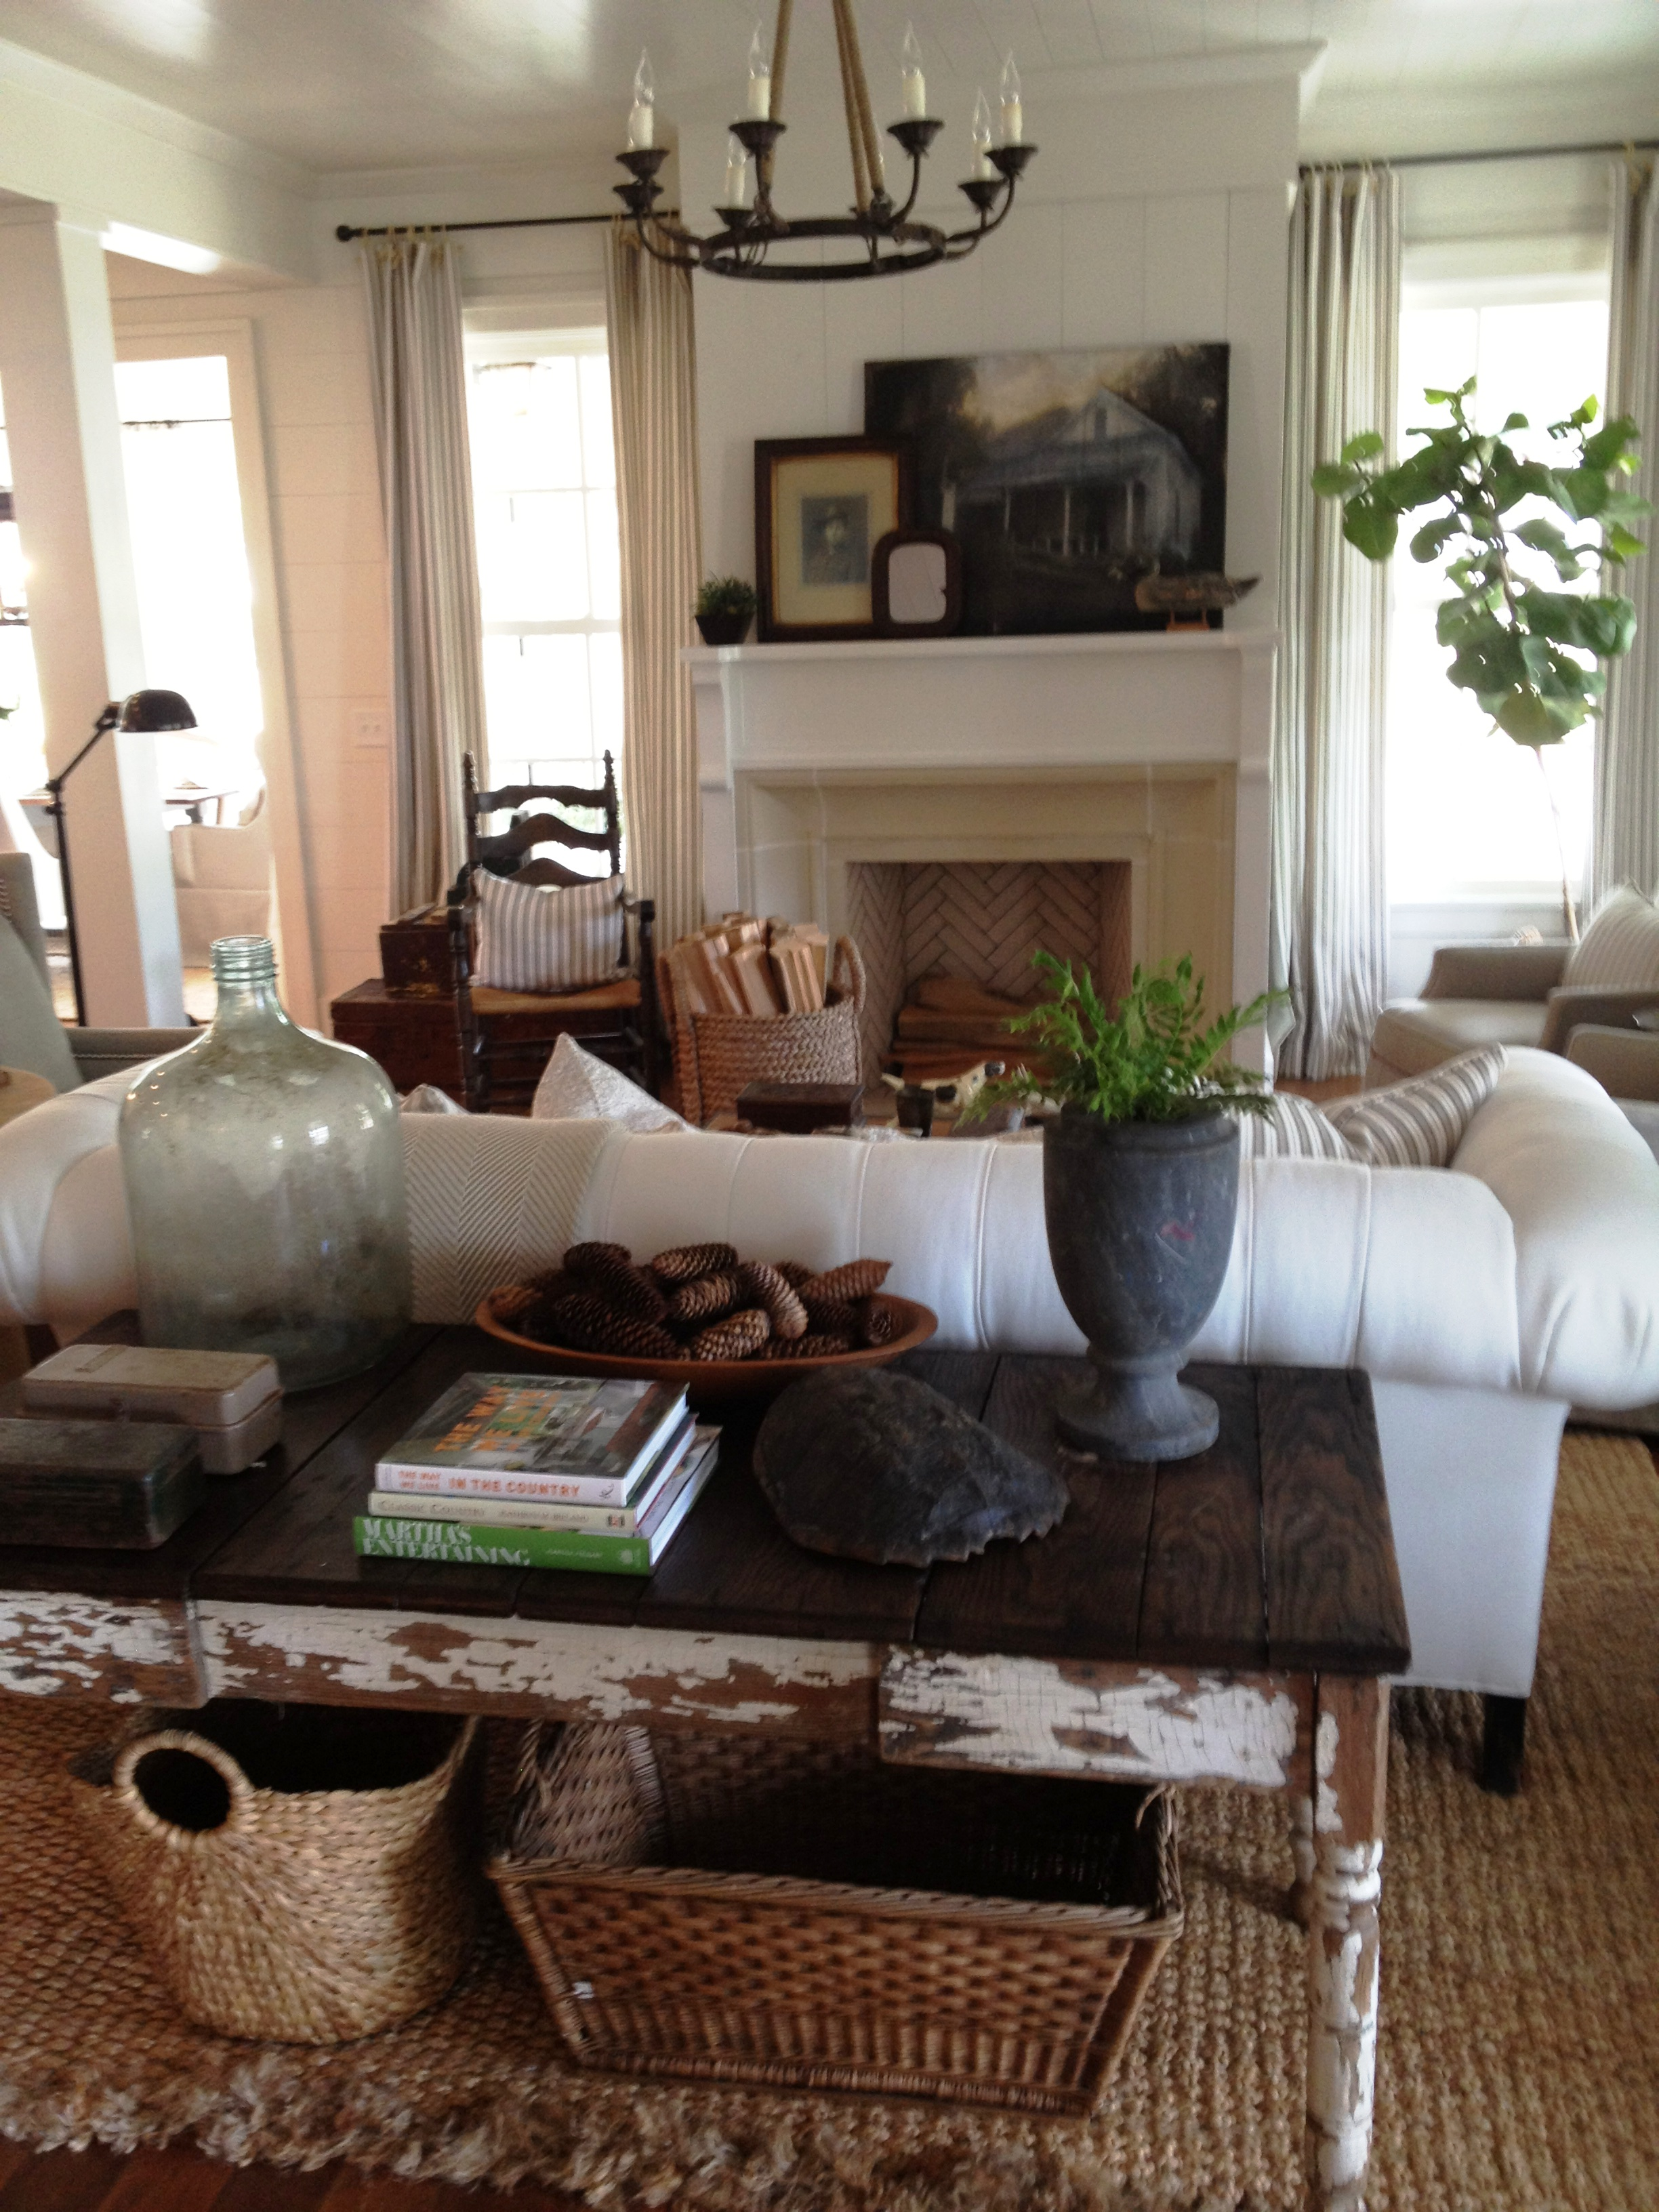 2012 southern living idea house through our eyes living - Decorations ideas for living room ...